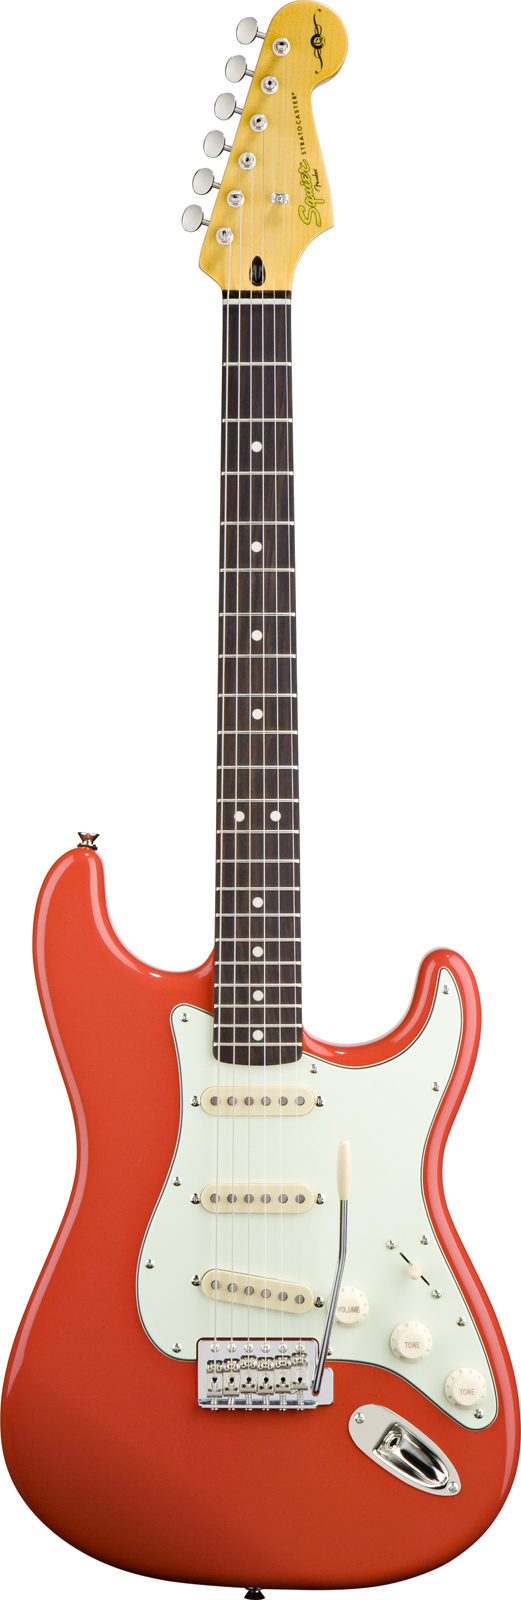 Squier By Fender Squier Simon Neil Stratocaster Fiesta Red